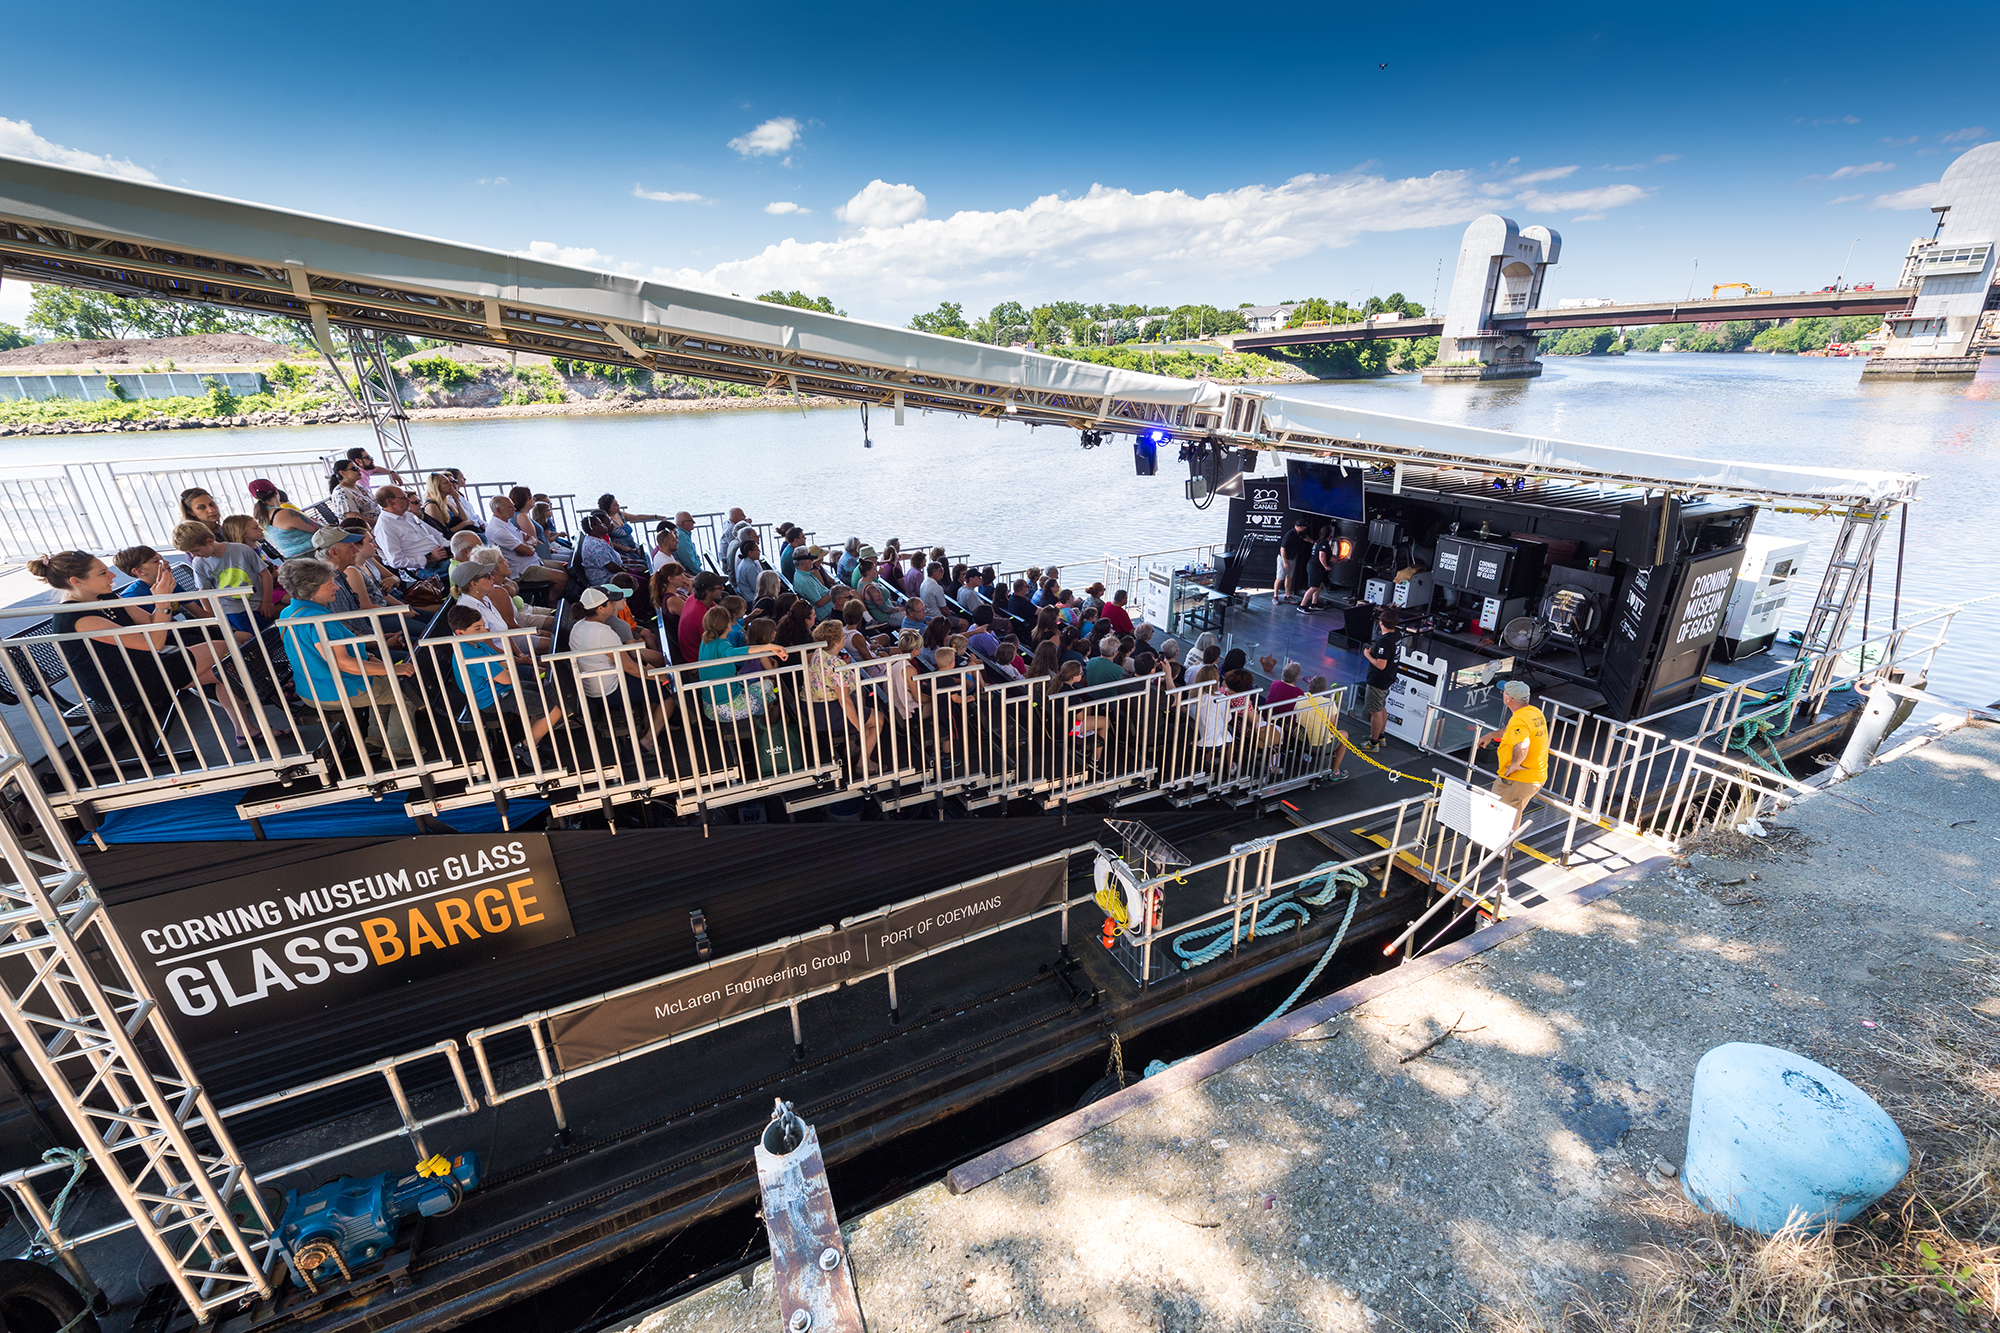 Barge with stadium seating docked on the Hudson River with visitors watching glassblowing.